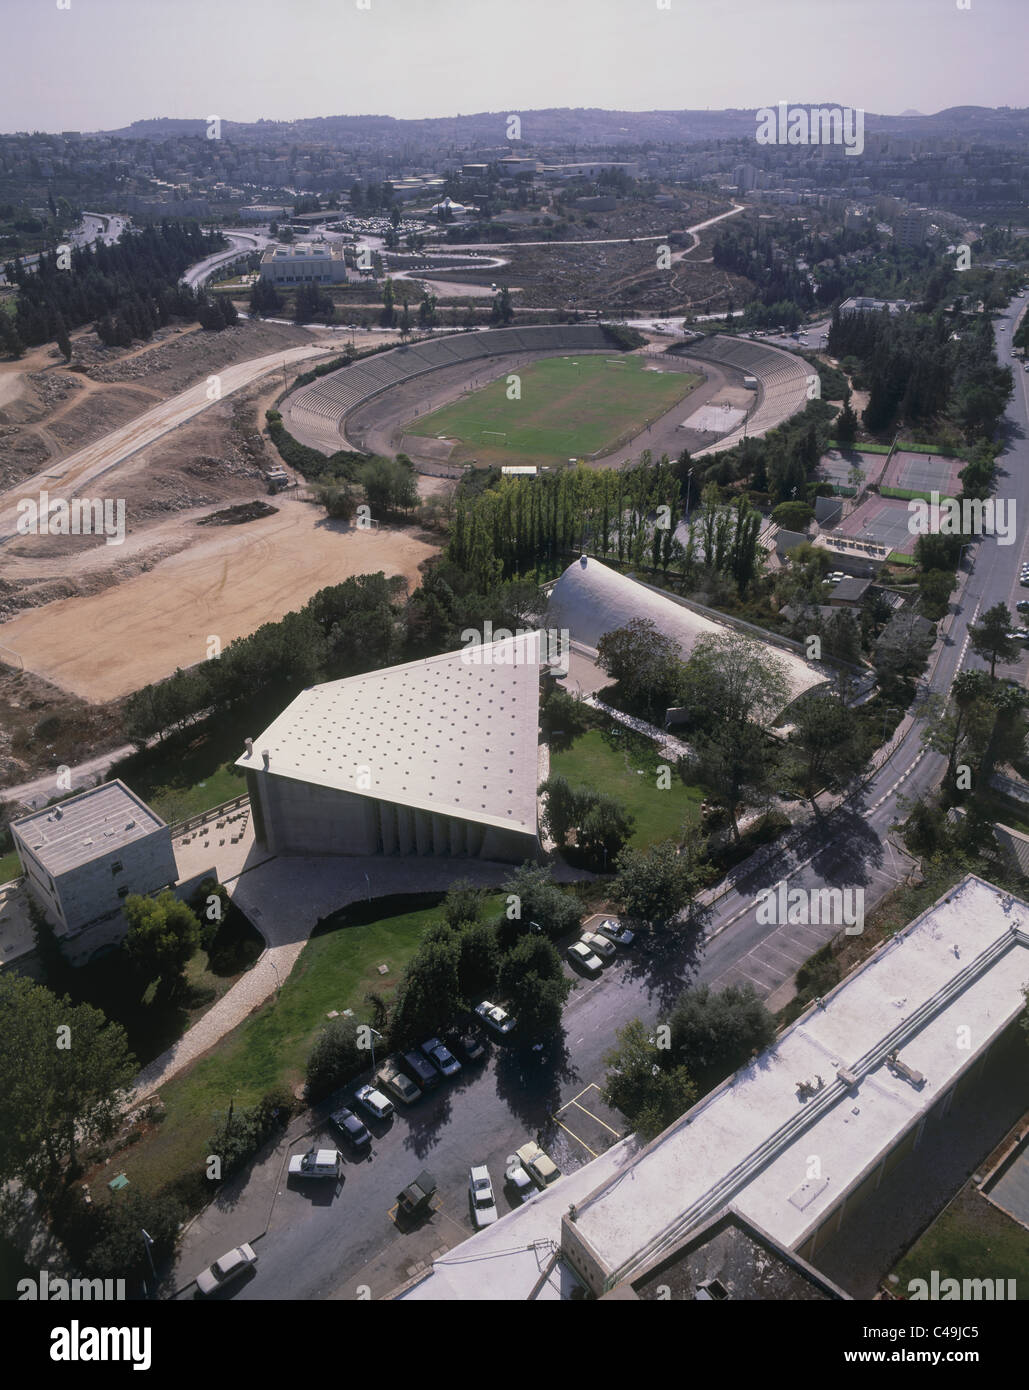 Aerial photograph of the Hebrew University in Jerusalem - Stock Image